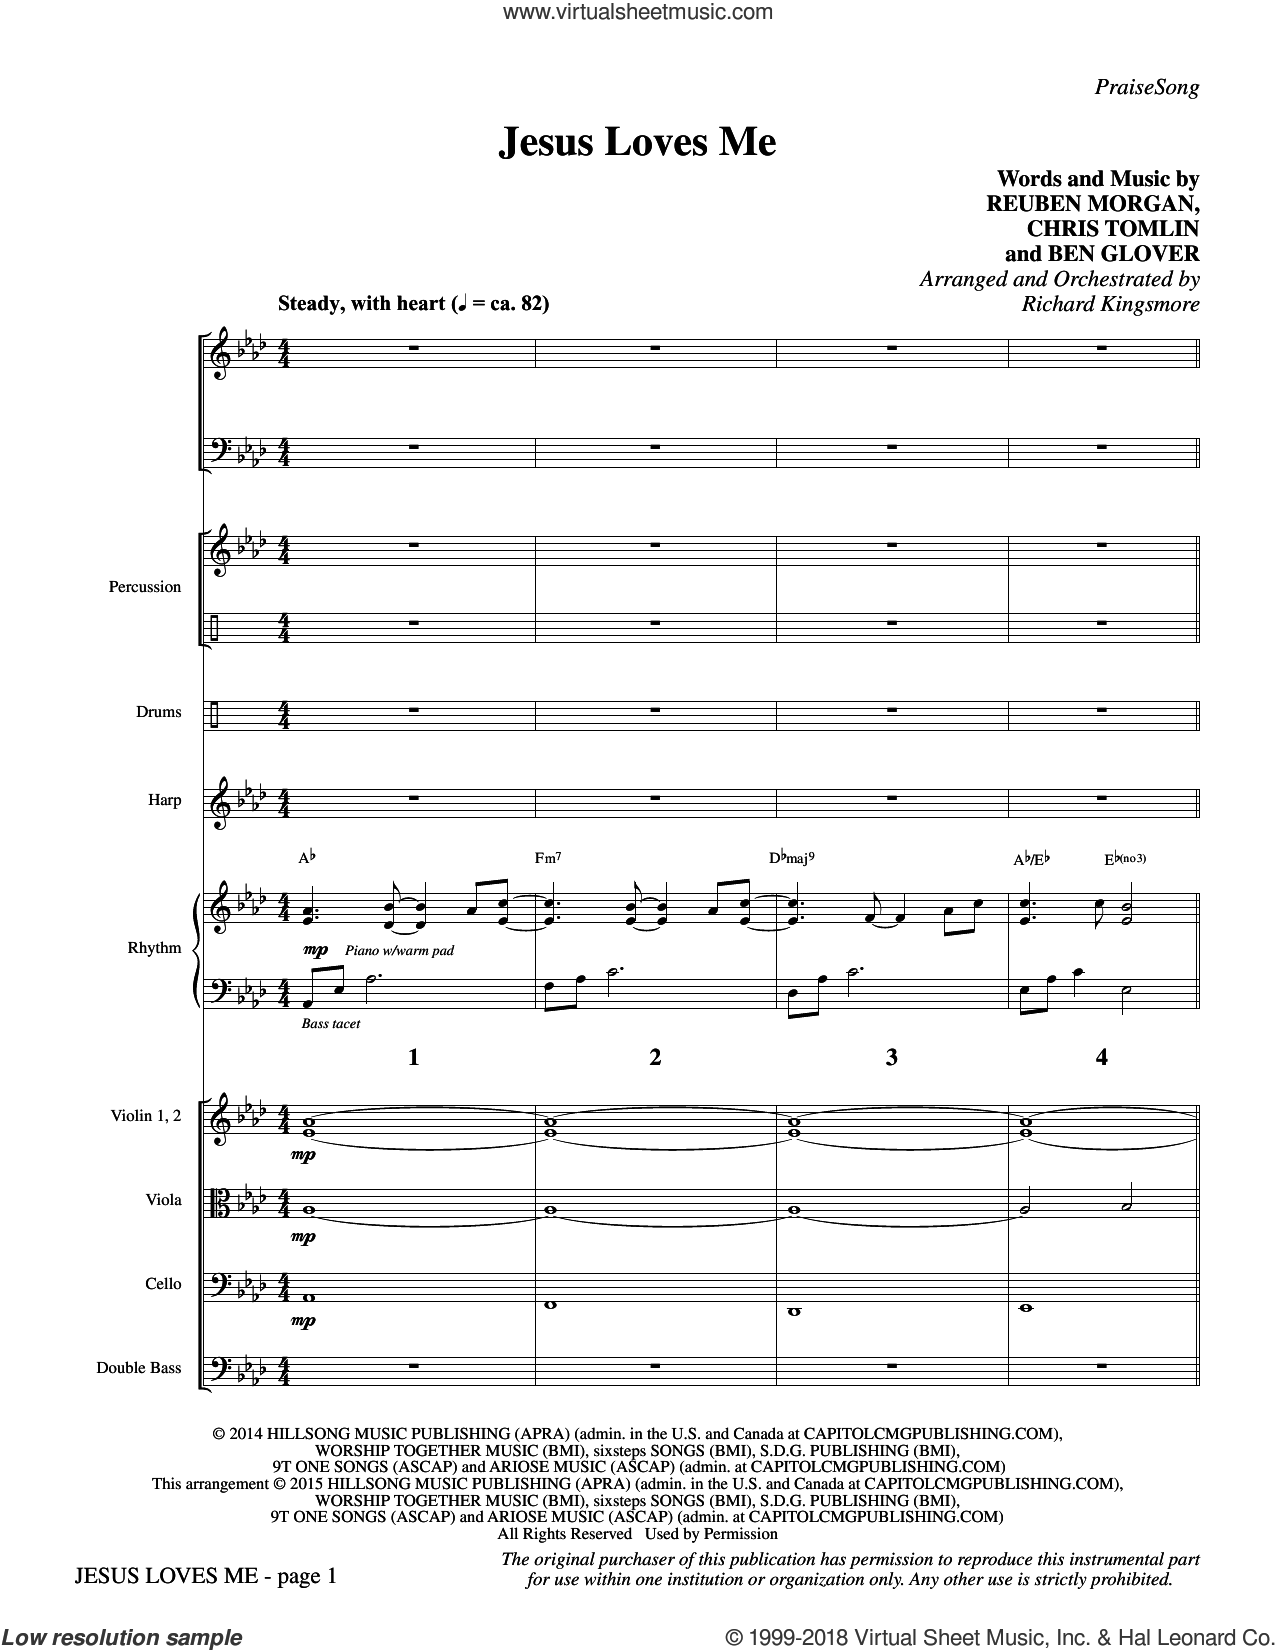 Jesus Loves Me (COMPLETE) sheet music for orchestra/band by Chris Tomlin, Ben Glover, Reuben Morgan and Richard Kingsmore, intermediate skill level